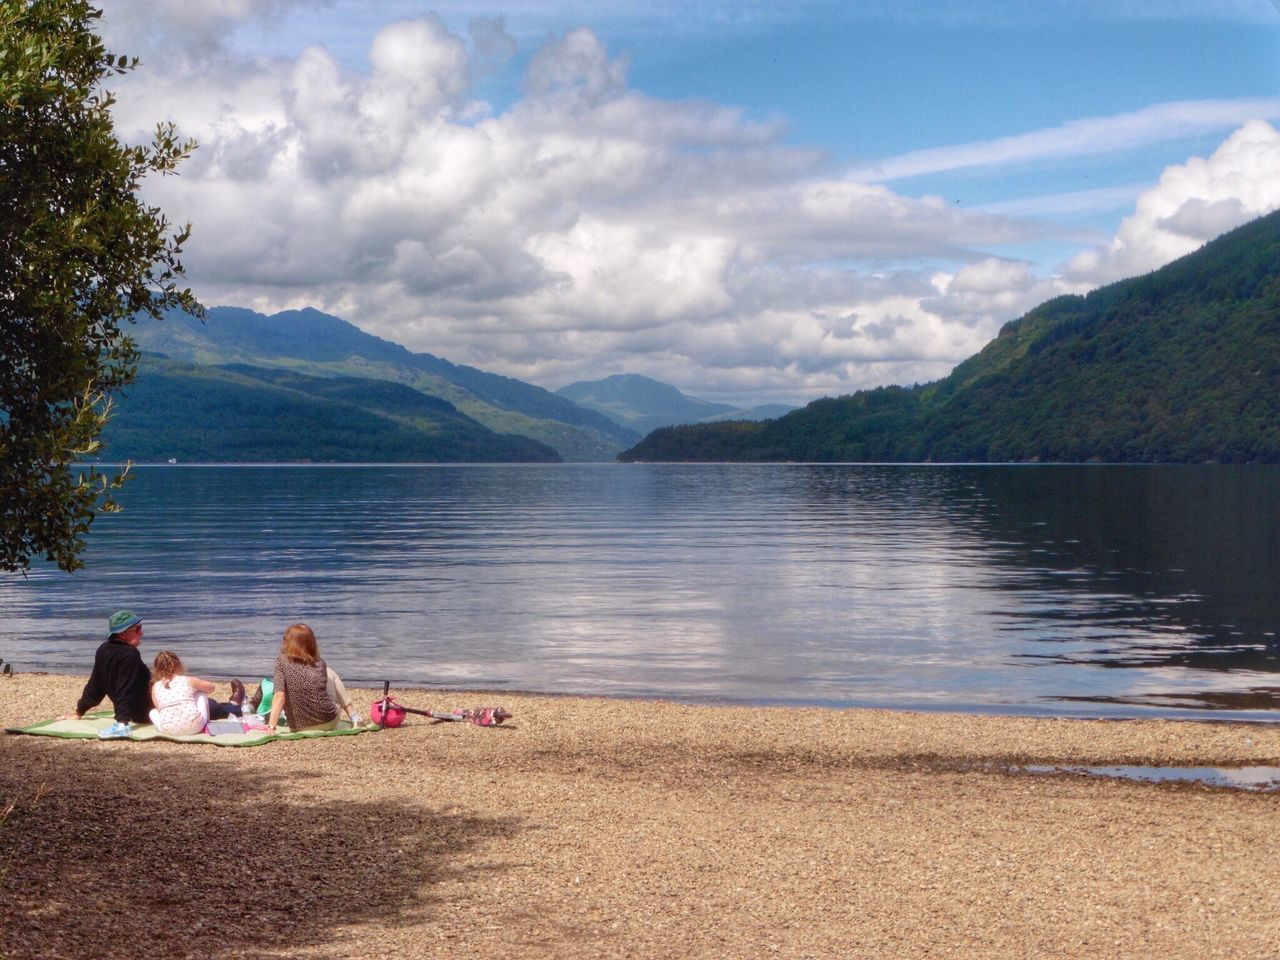 Mountain Two People Togetherness Beauty In Nature Sky Lake Nature Cloud - Sky Leisure Activity Real People Men Relaxation Bonding Lifestyles Women Tranquility Outdoors Water Idyllic Mountain Range Travel Photography Scotland LochLomond Picnic Rear View